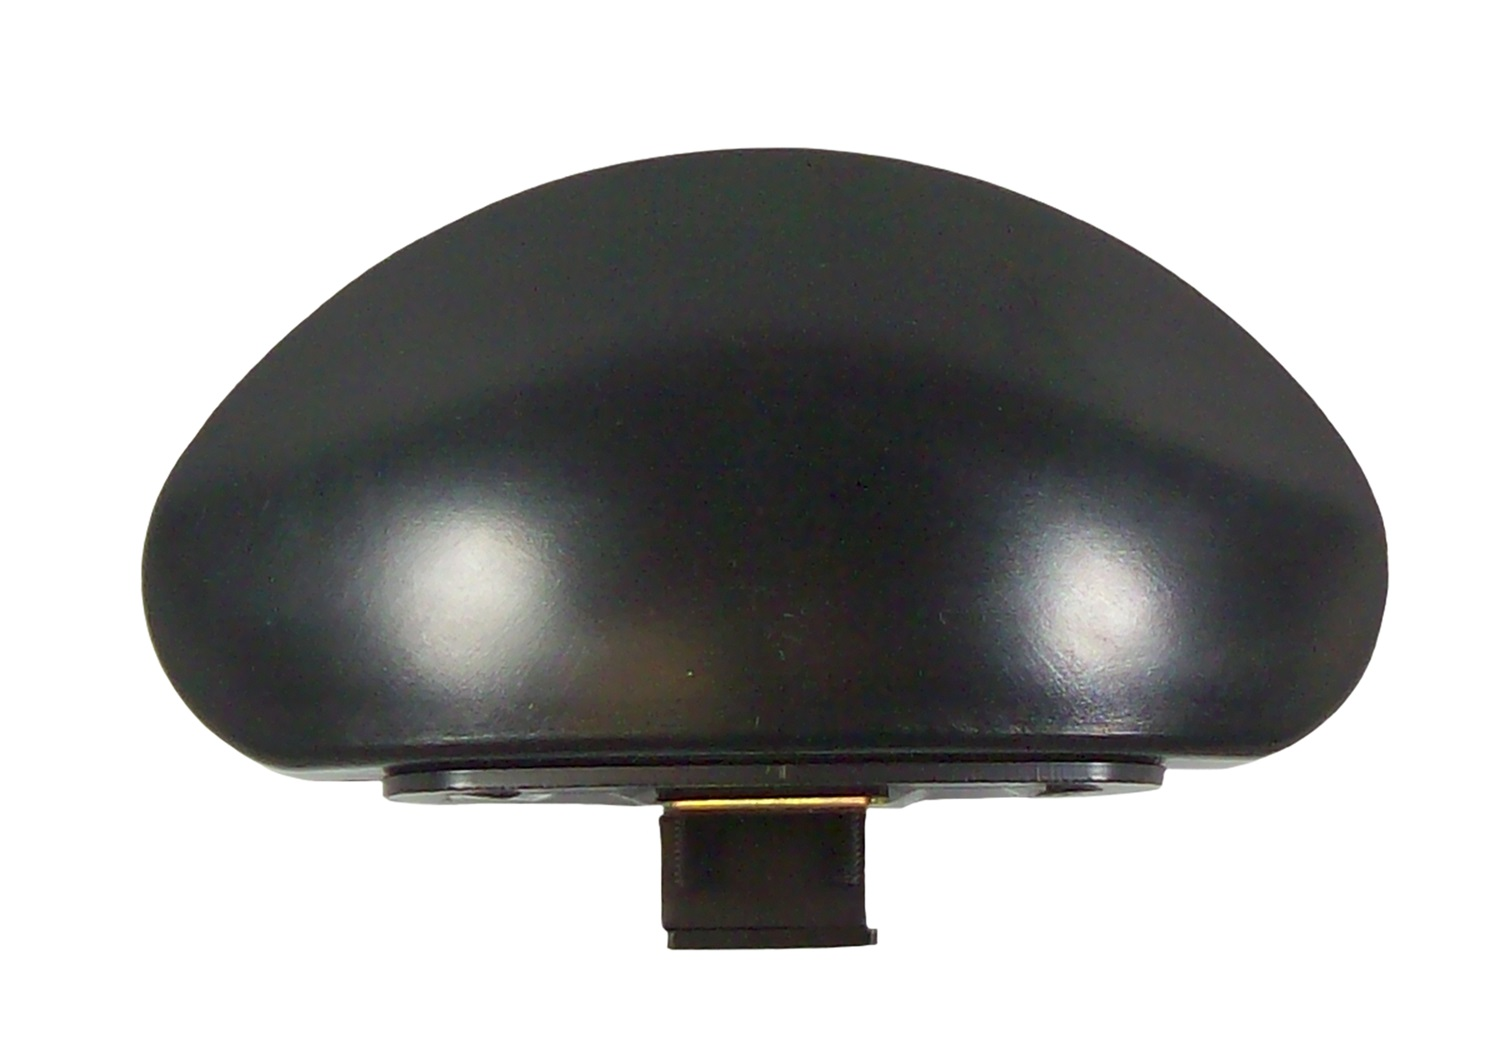 Cipa mirrors 49805 hotspots convex blind spot mirror clamp for Convex mirror